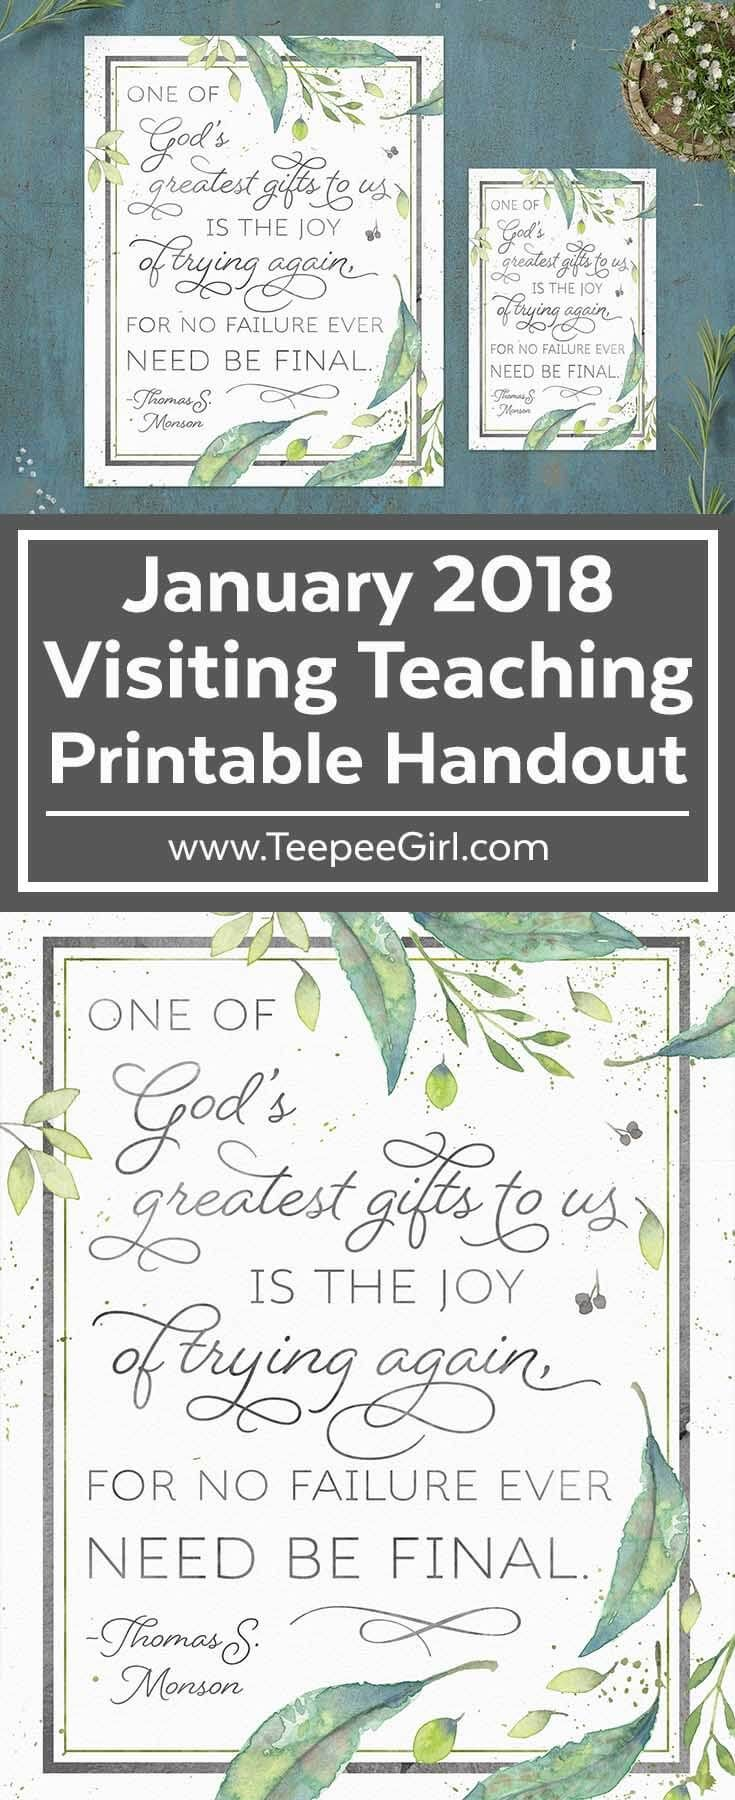 January 2018 Visiting Teaching Printable Handout | Inspirational Printable | www.TeepeeGirl.com #VisitingTeaching #LDSPrintables #LDSReliefSociety